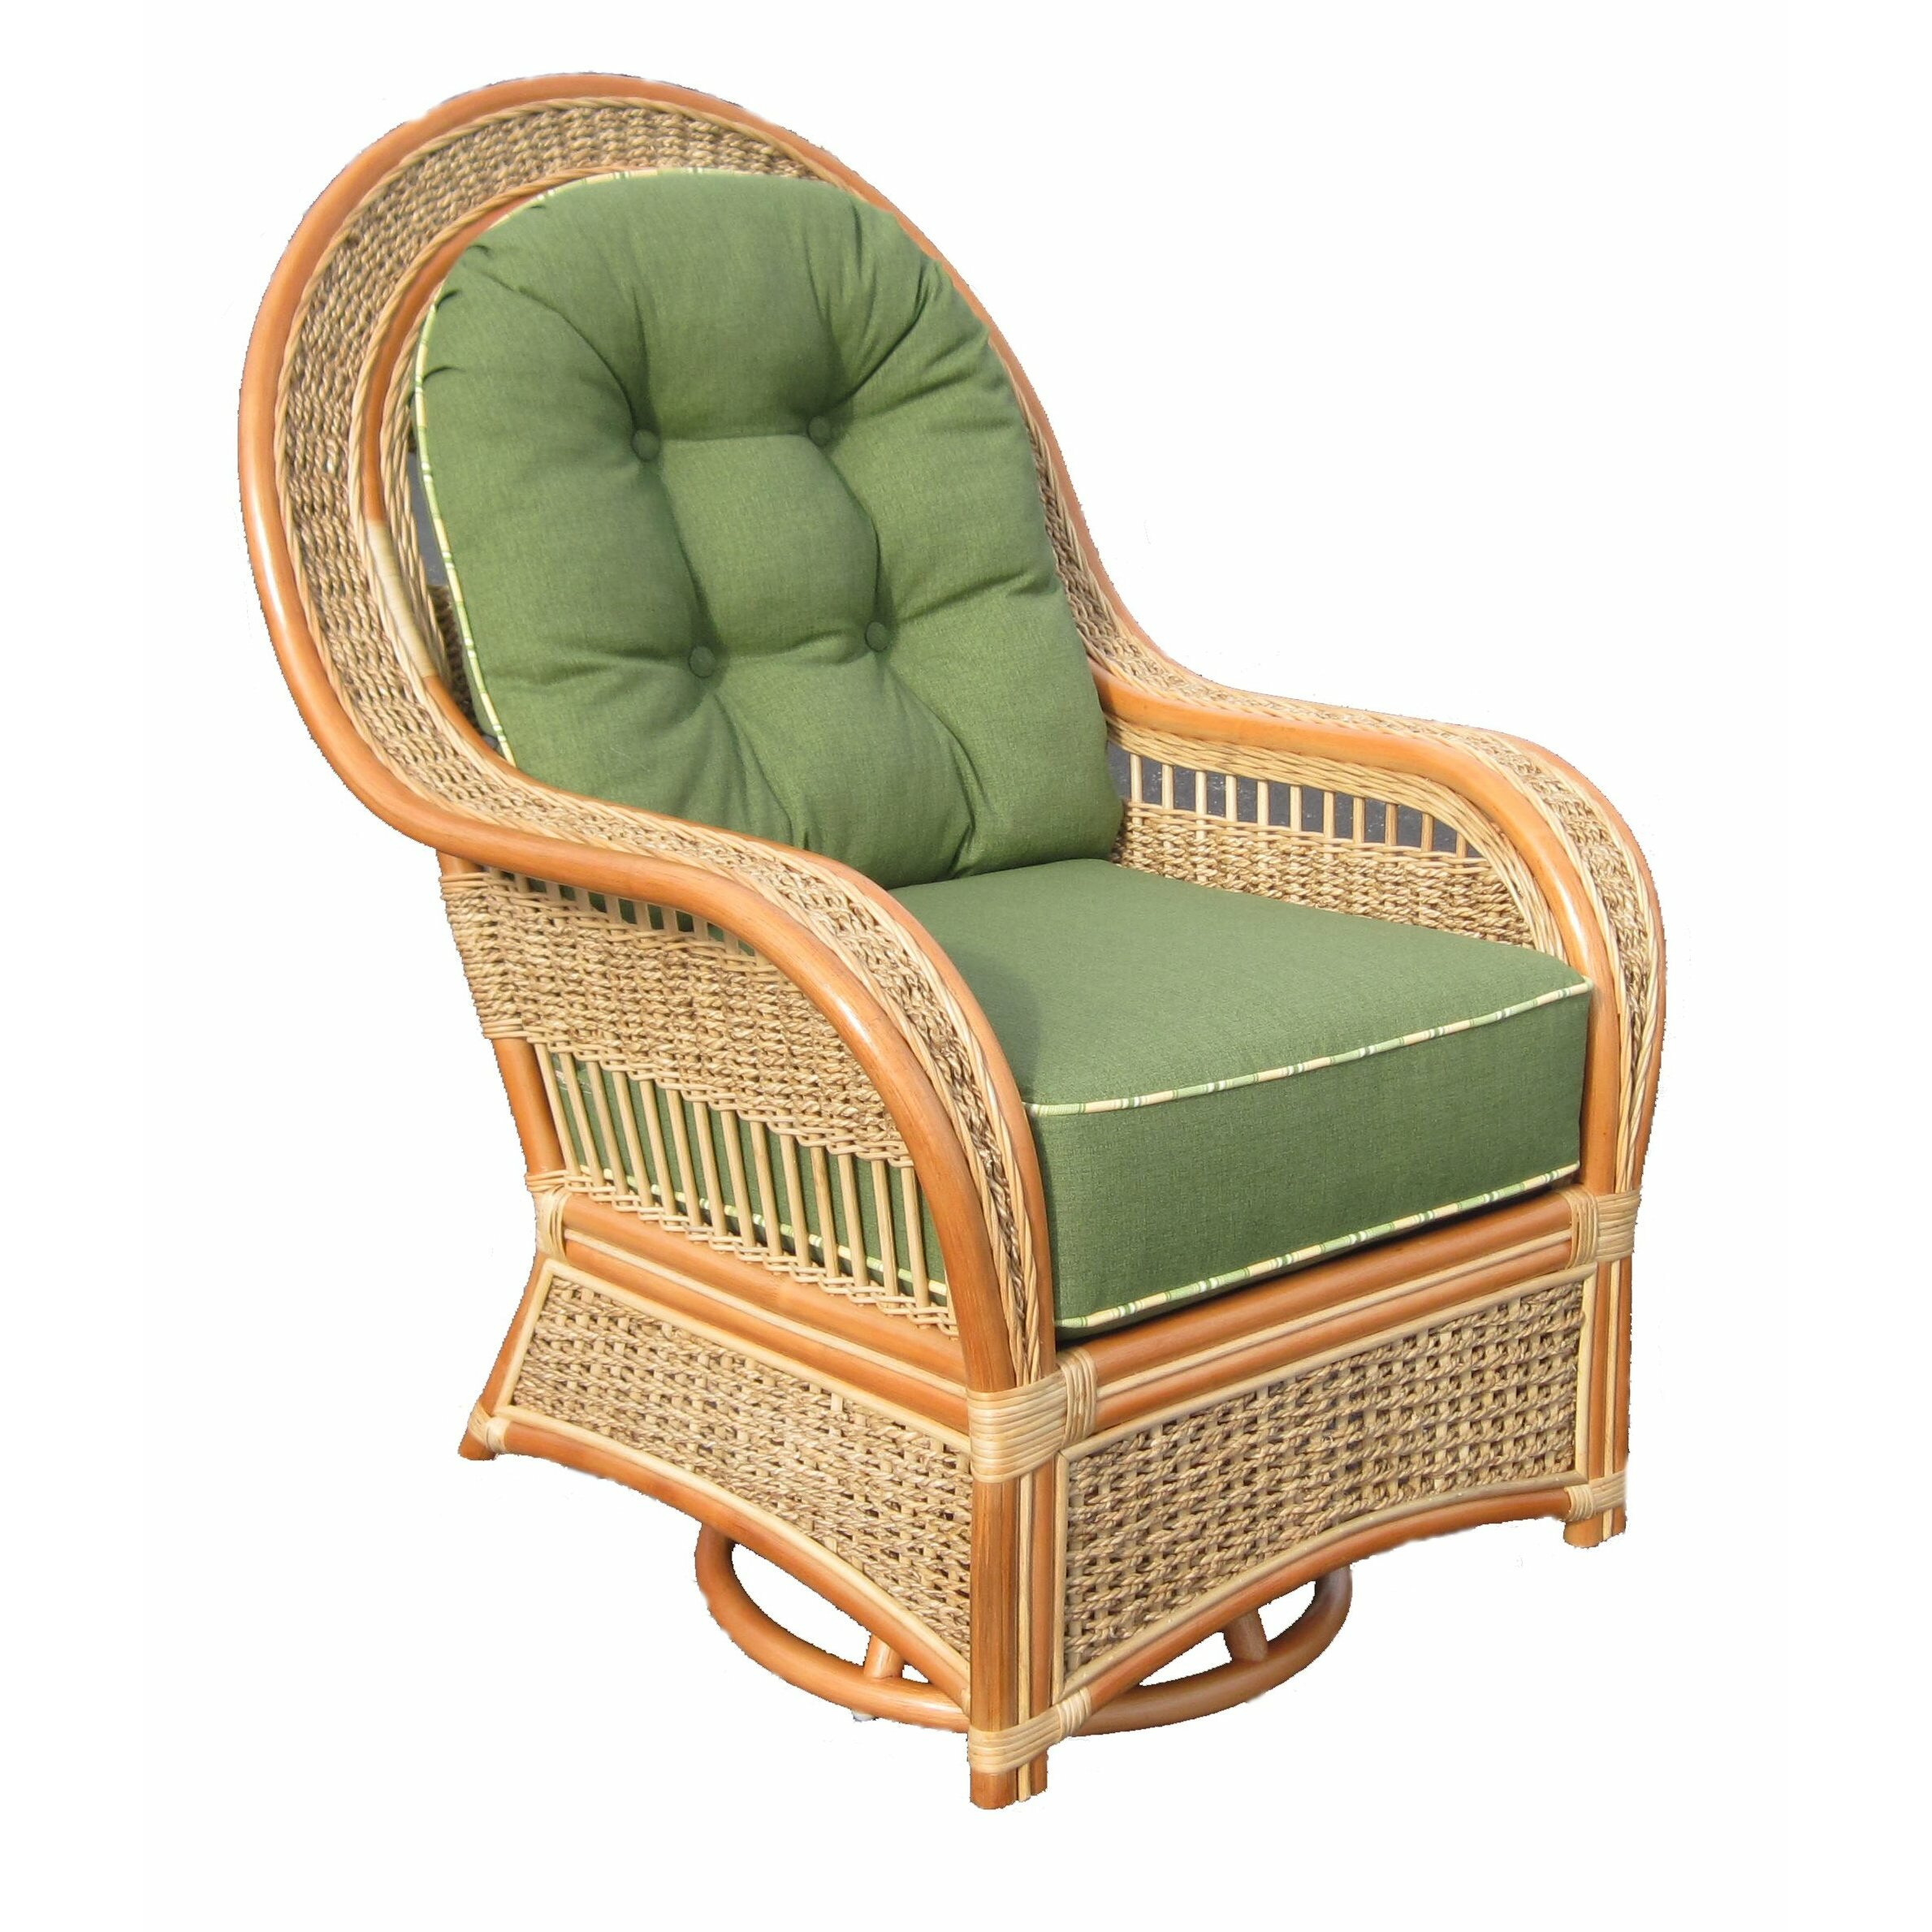 Spice Islands Swivel Rocking Chair & Reviews